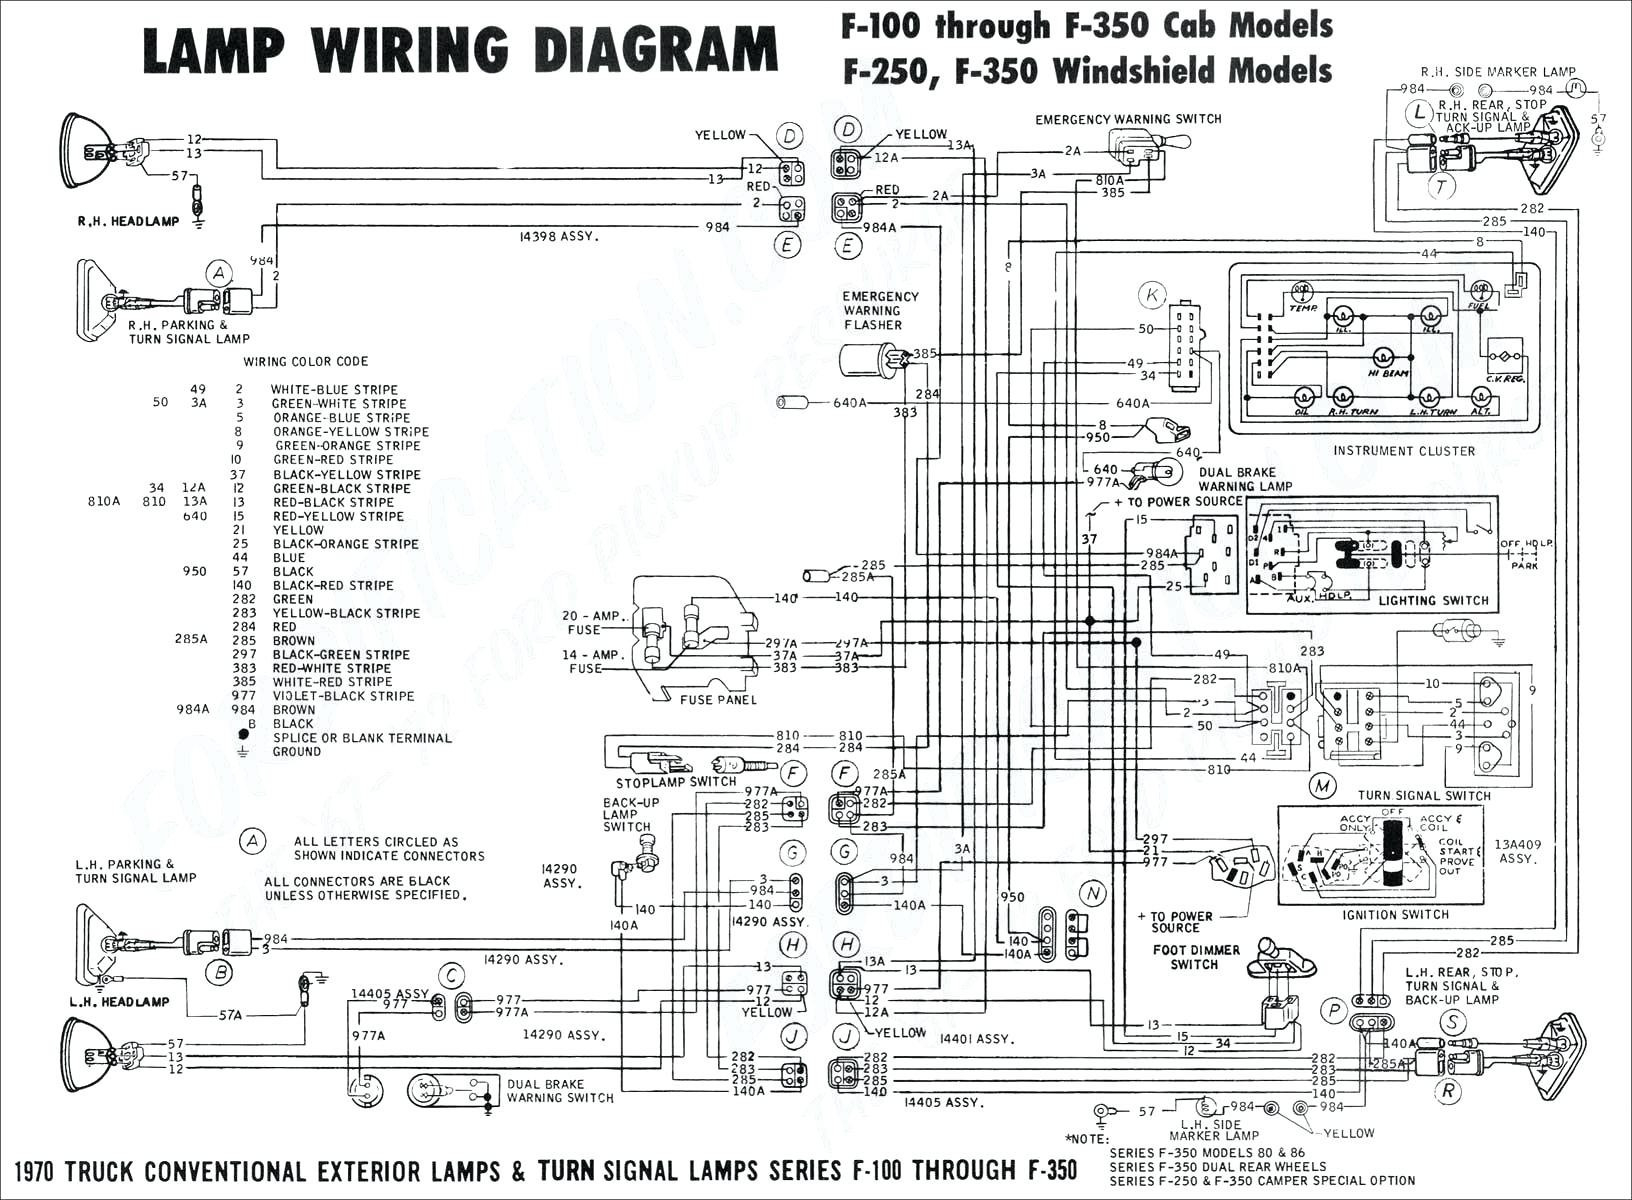 2000 f250 tail light wiring diagram custom wiring diagram u2022 rh littlewaves co ford tail light wiring colors ford tail light wiring harness